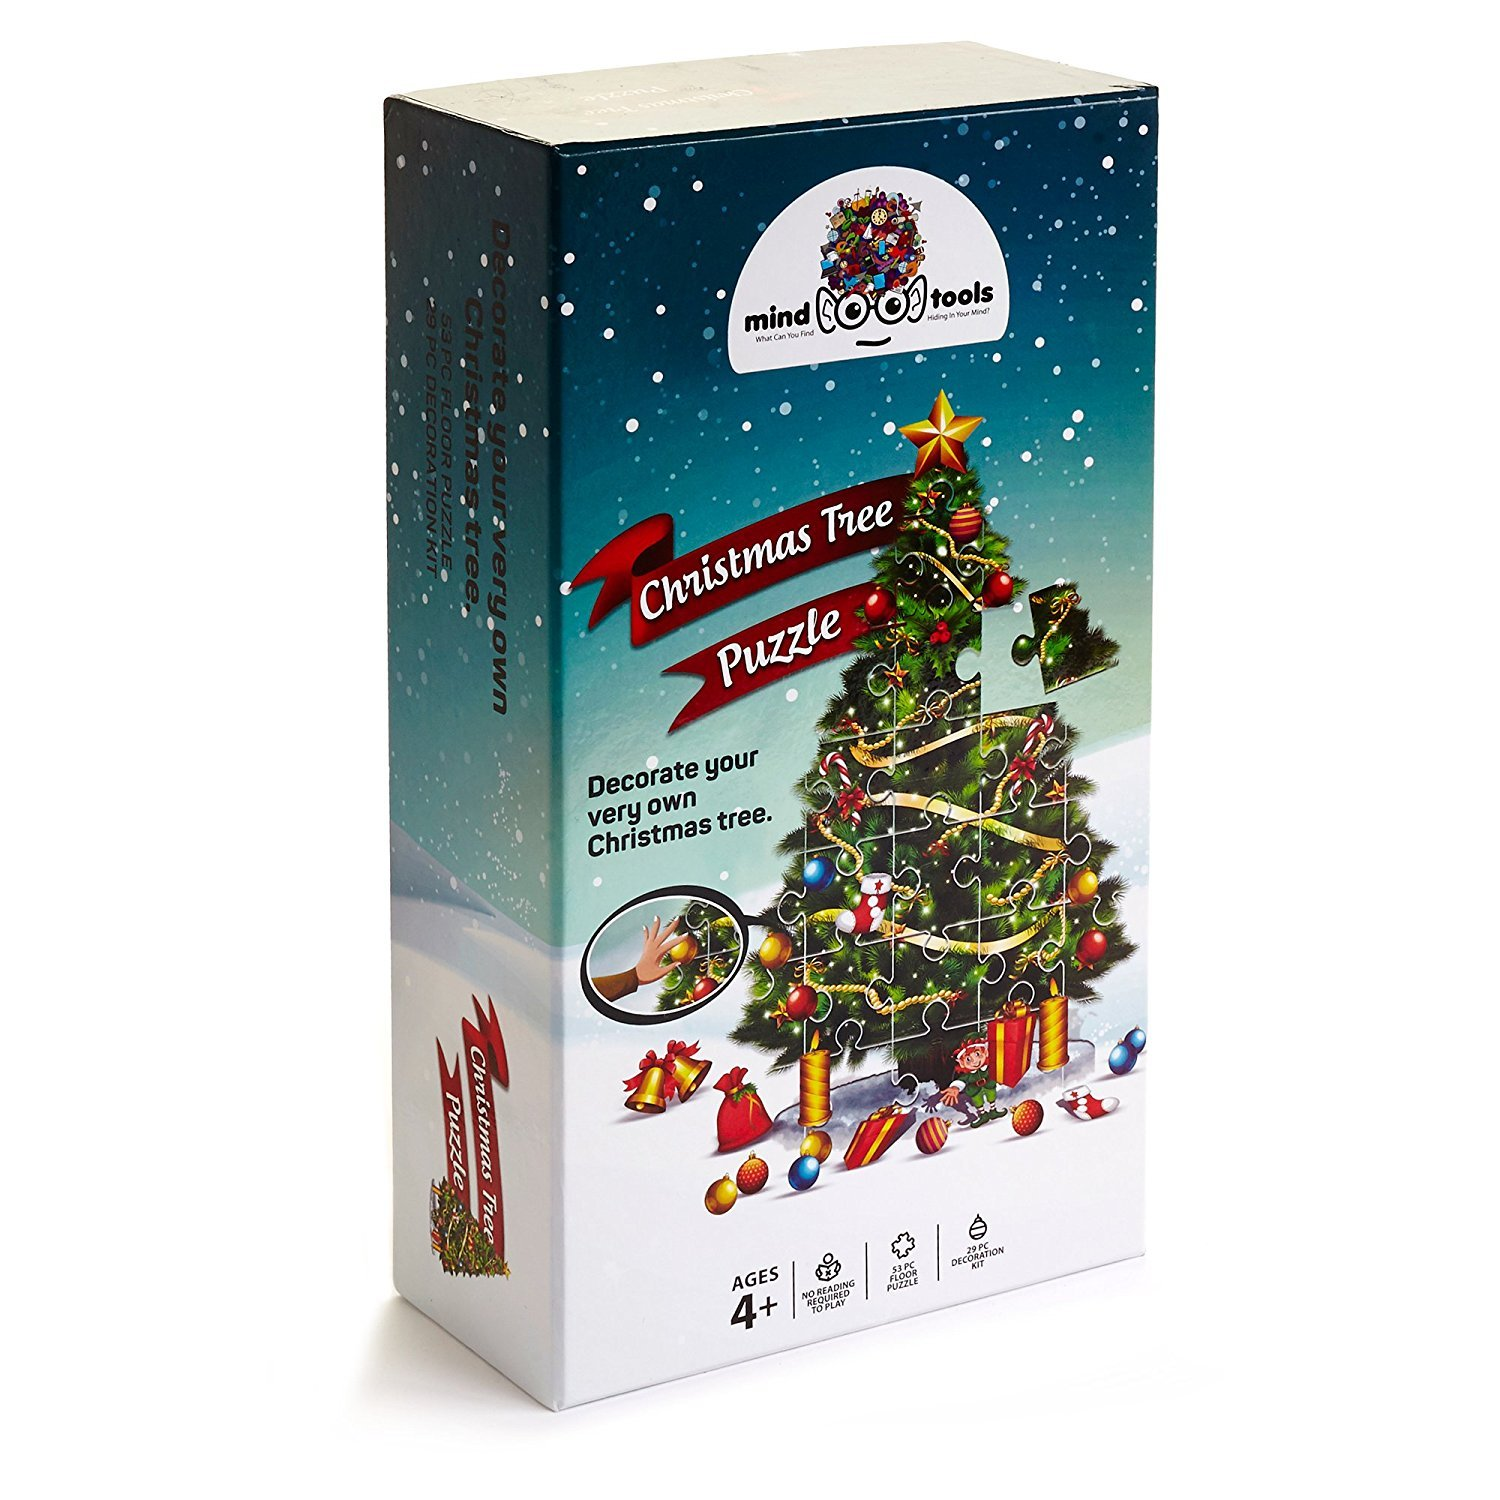 Educational Christmas Tree Floor Puzzle +29PC Ornaments kit -Let Your Children Decorate Their Own Tree -Puzzles For Kids 4 Years Old Will teach to follow design & coordination-not trail & error method by Mind Tools (Image #6)